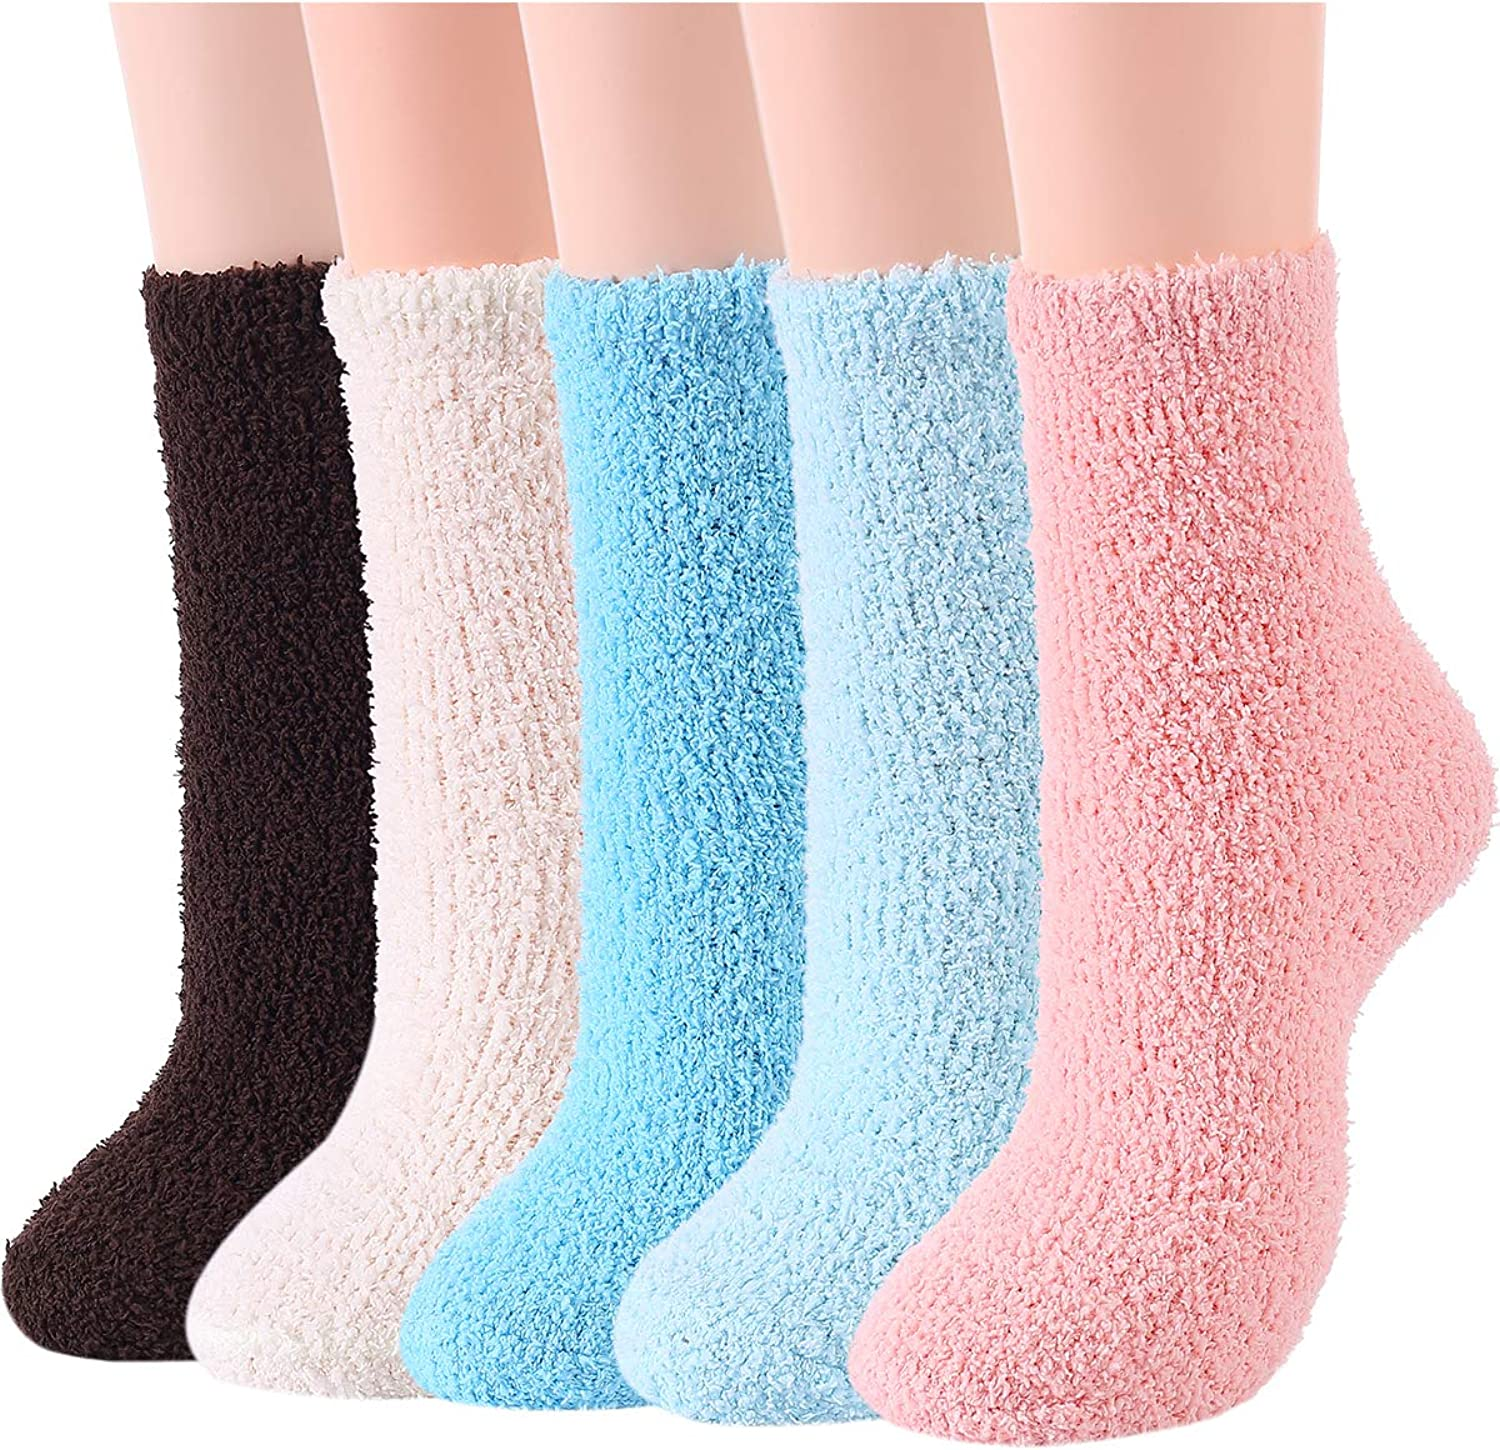 Century Star Womens Fuzzy Fluffy Cozy Warm Super Soft Slipper Socks Microfiber 3-8 Pairs Home Socks